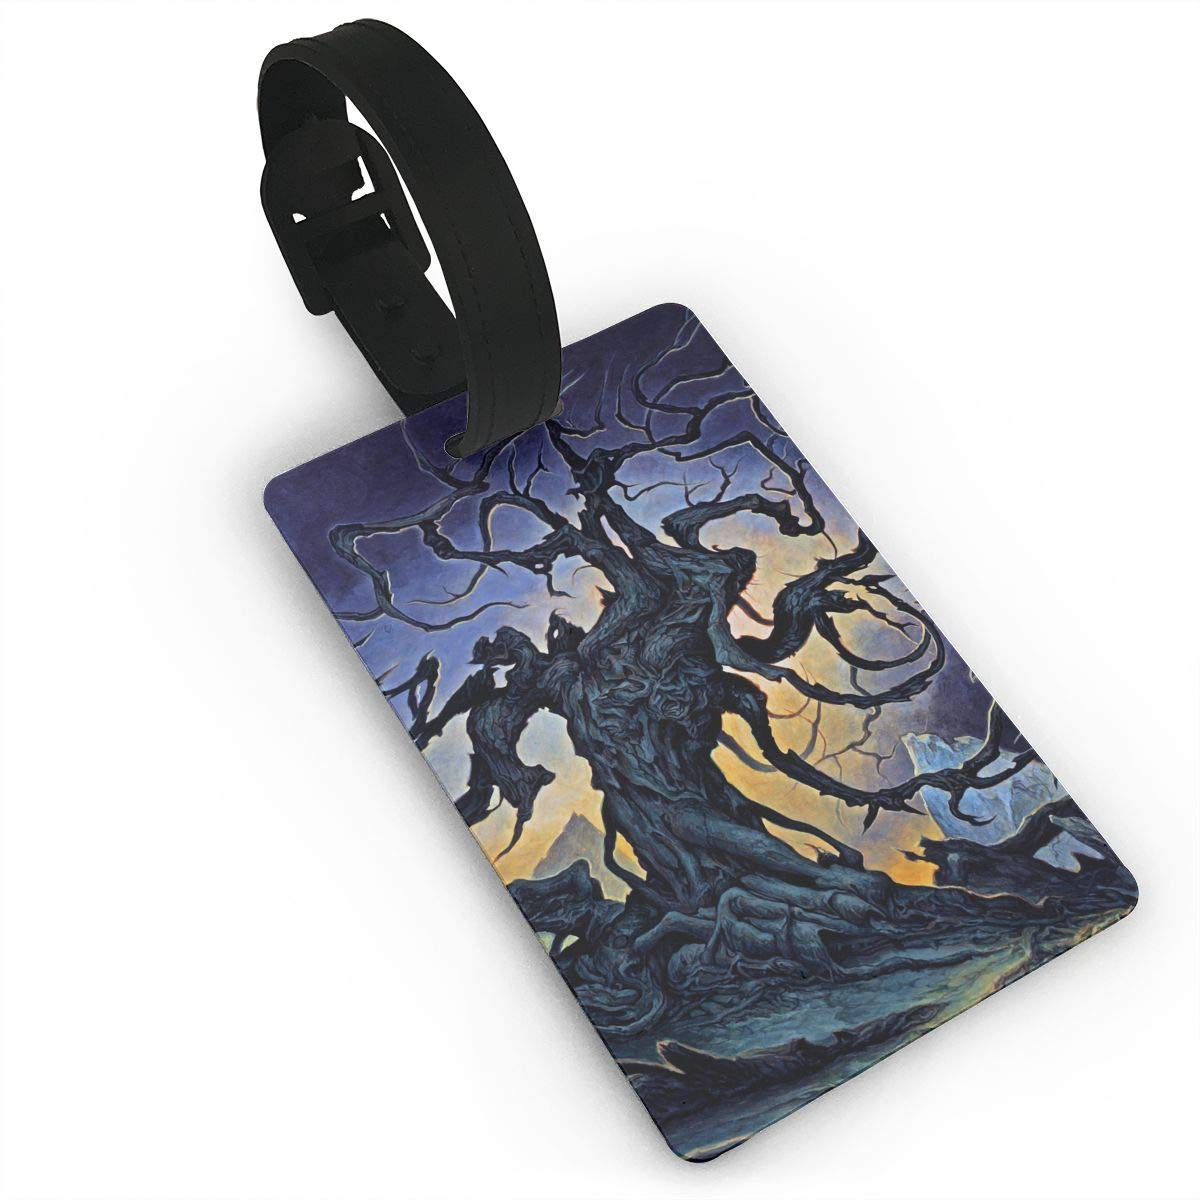 2 Pack Luggage Tags Tree Roots Cruise Luggage Tag For Travel Bag Suitcase Accessories